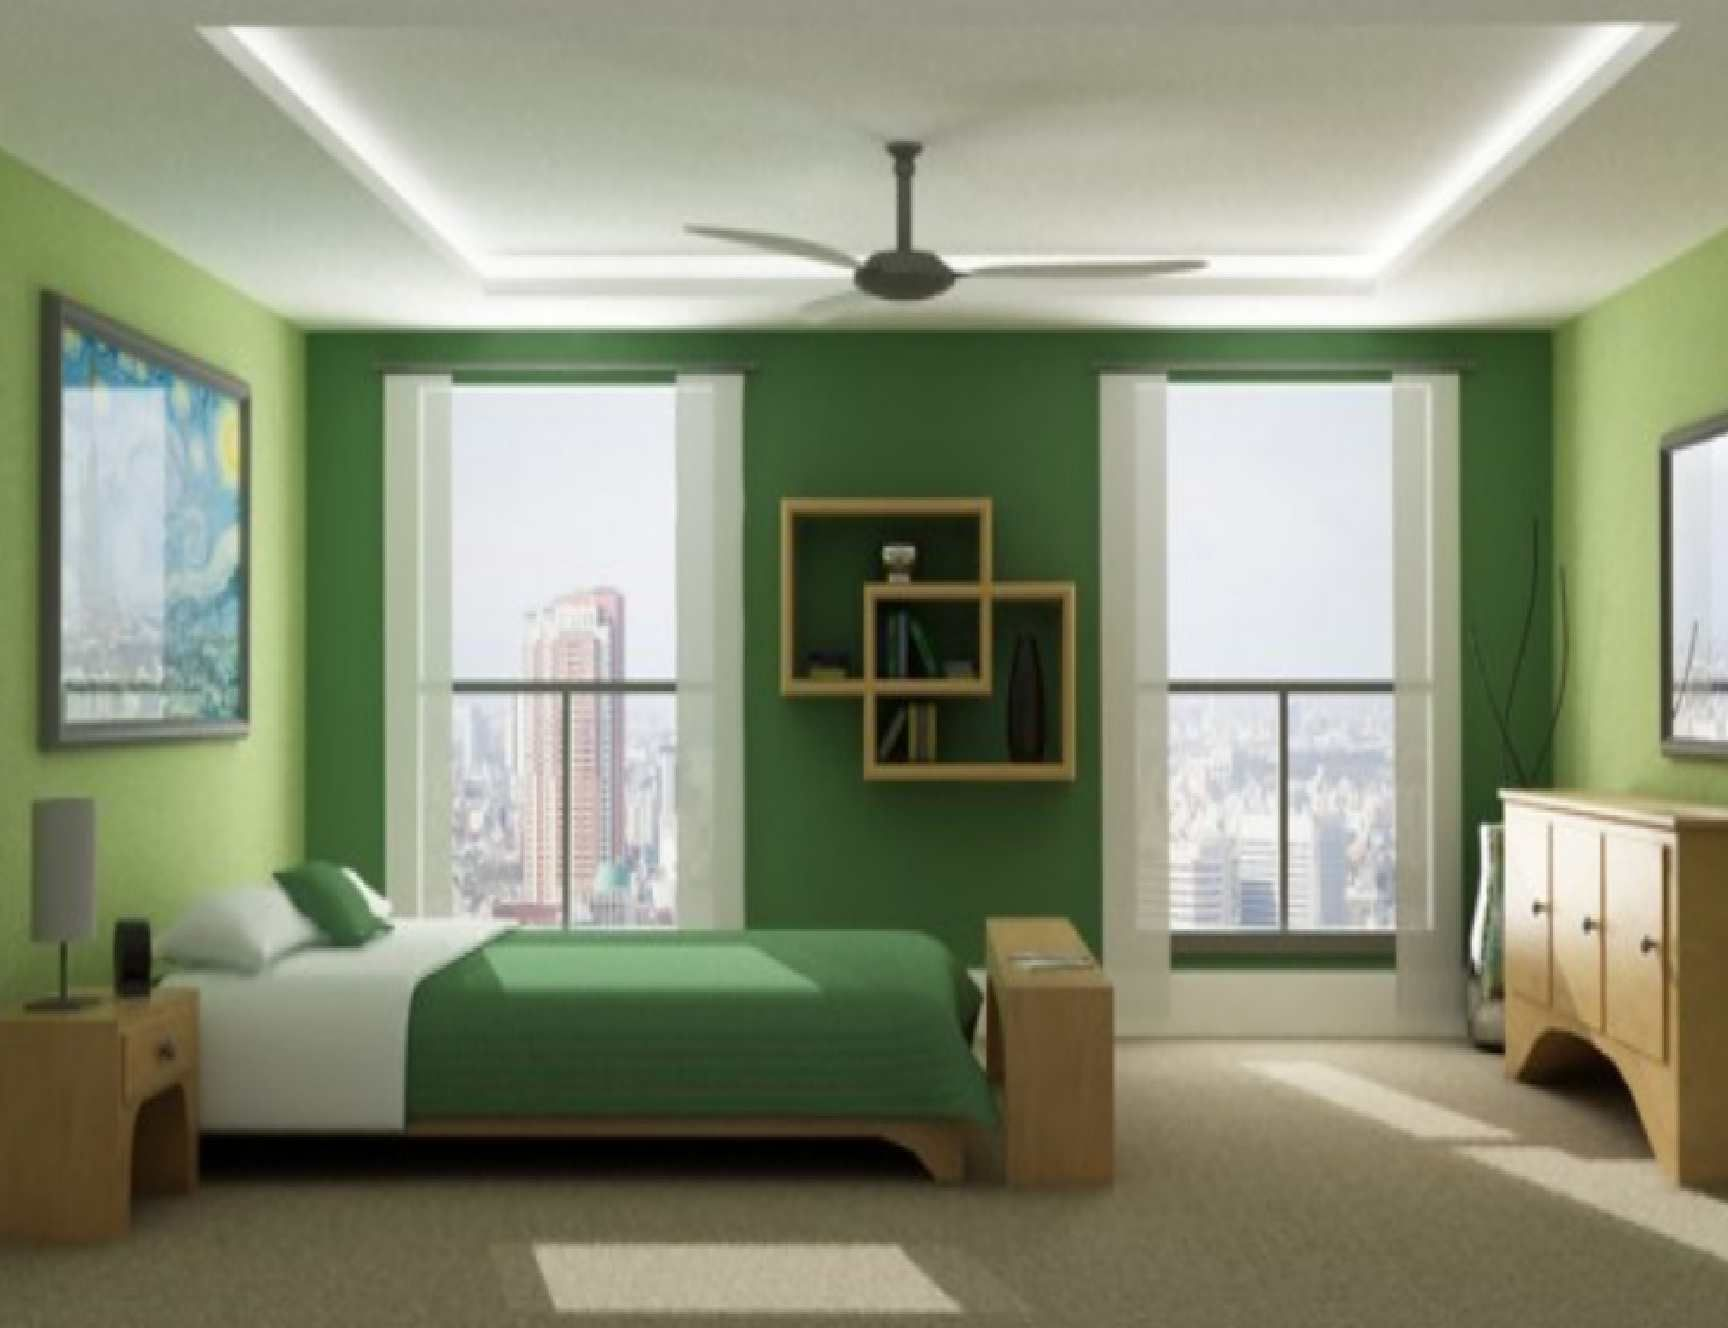 Attractive Inspiration Bedroom Sweet False Ceiling Lights With Fans On White Plafonds  As Well As Modern Low